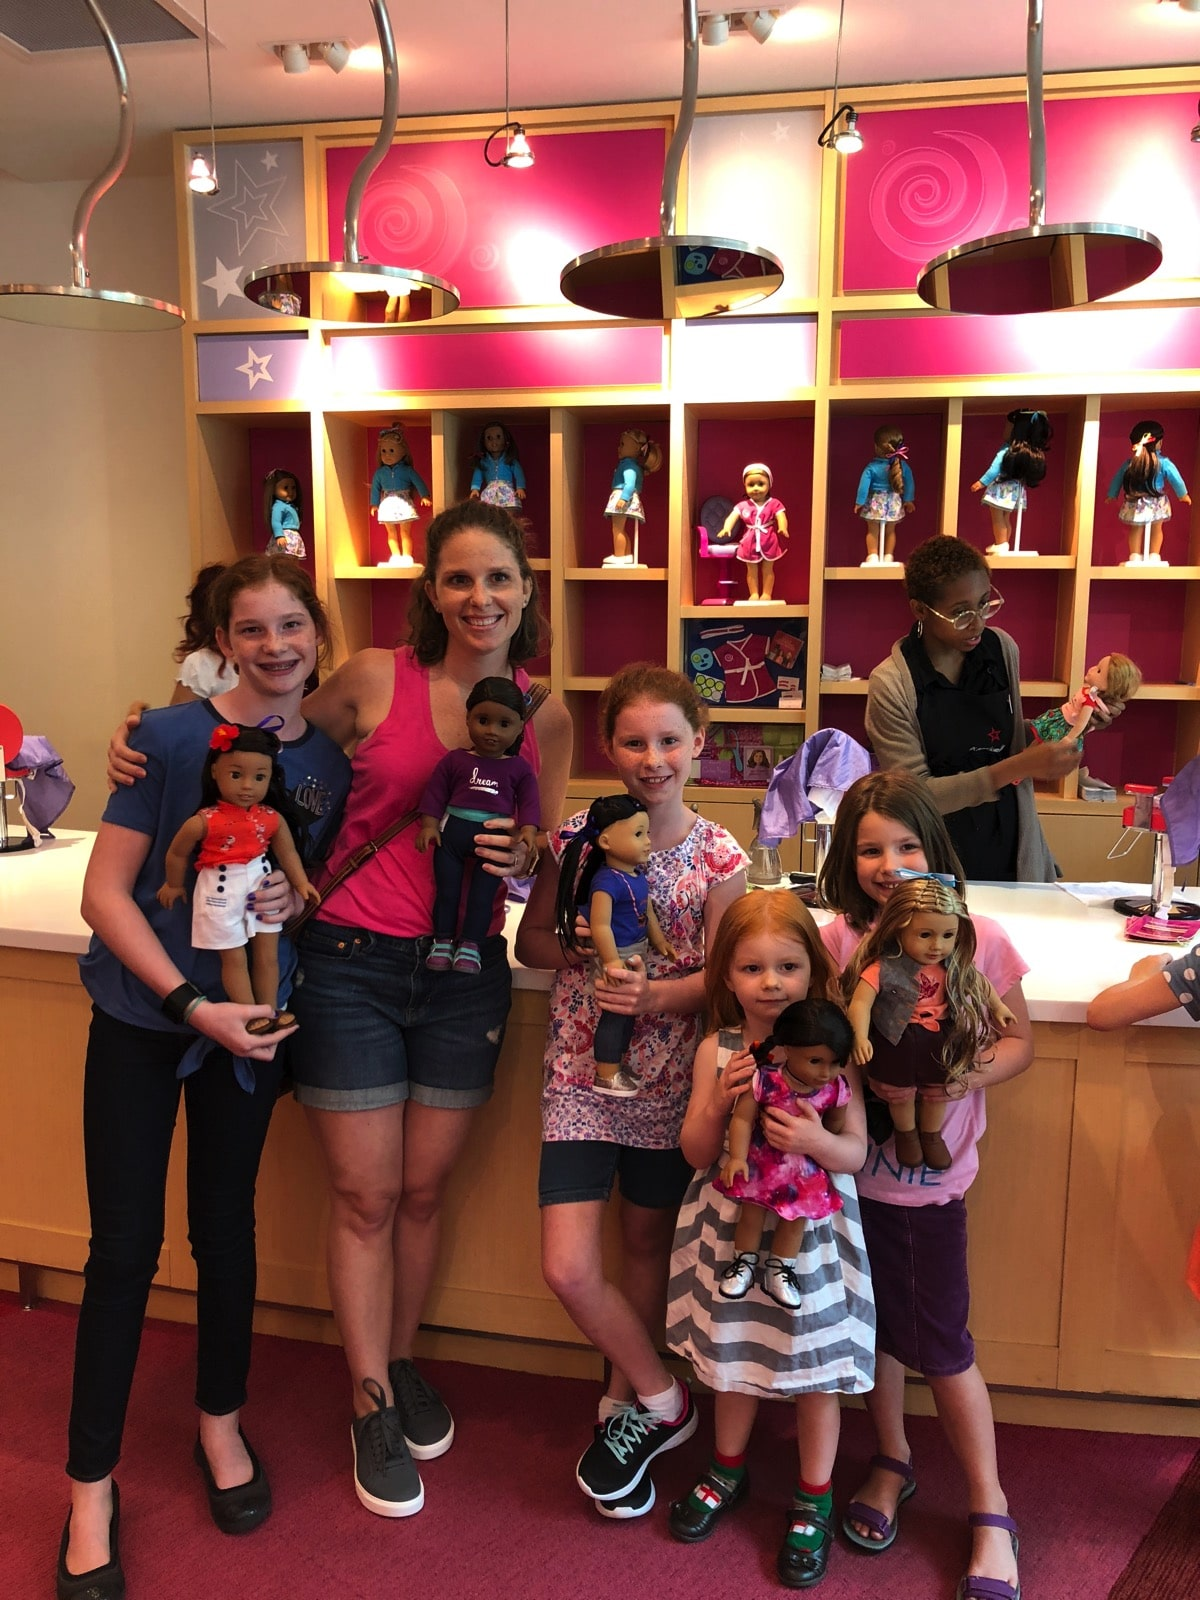 american girl salon all finished